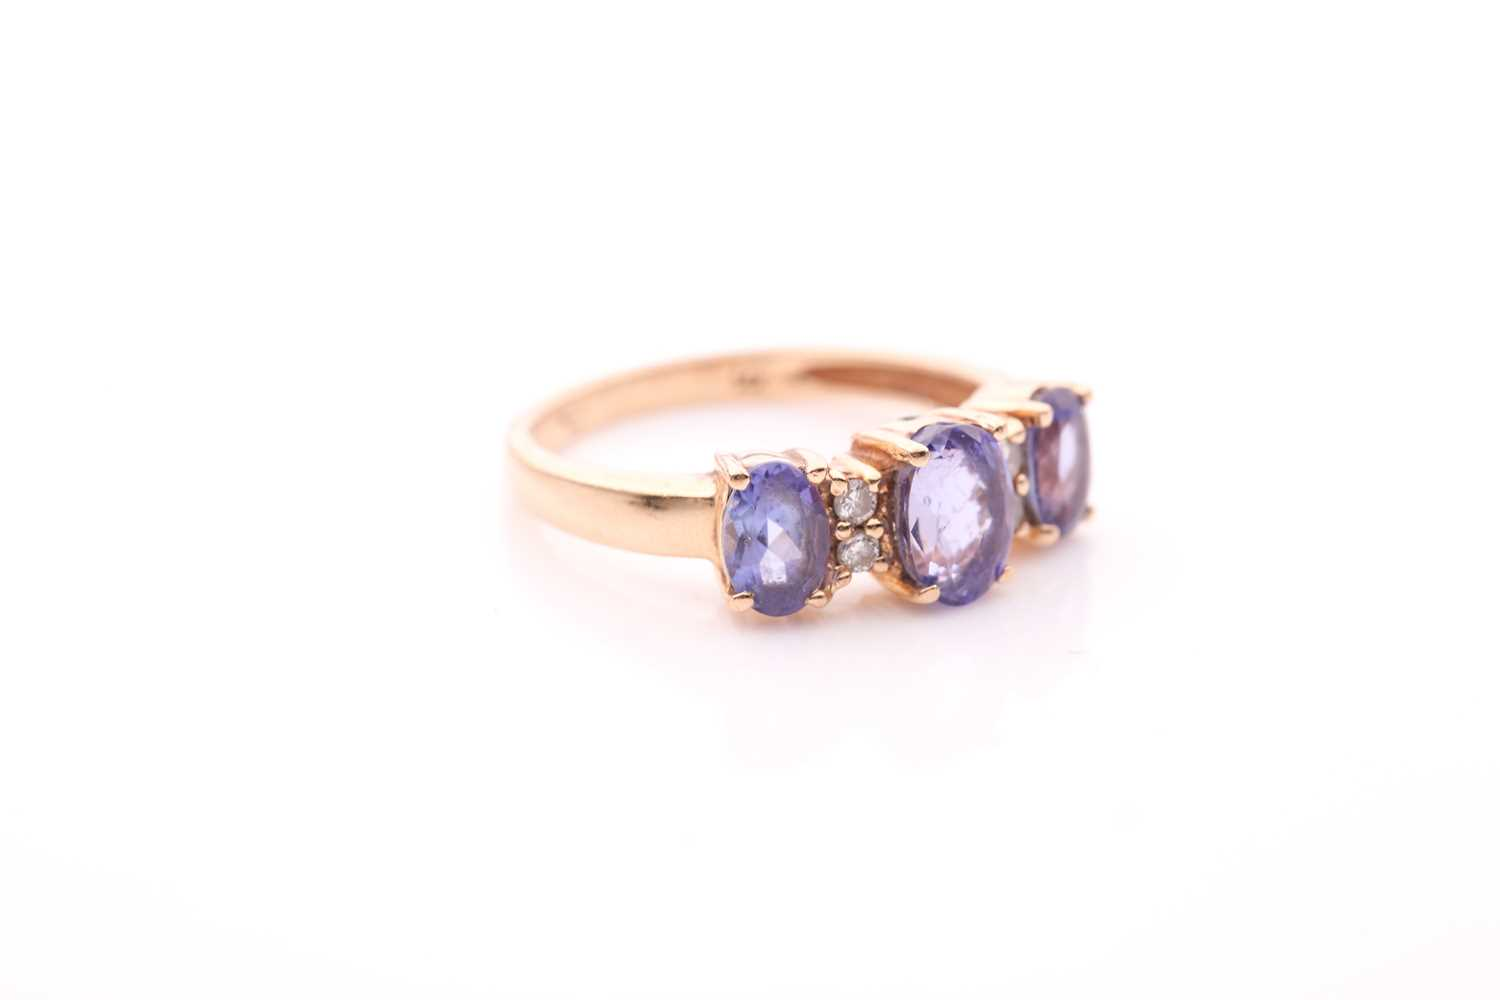 A yellow metal and tanzanite ring, set with three mixed oval-cut tanzanites, interspersed with - Image 5 of 5